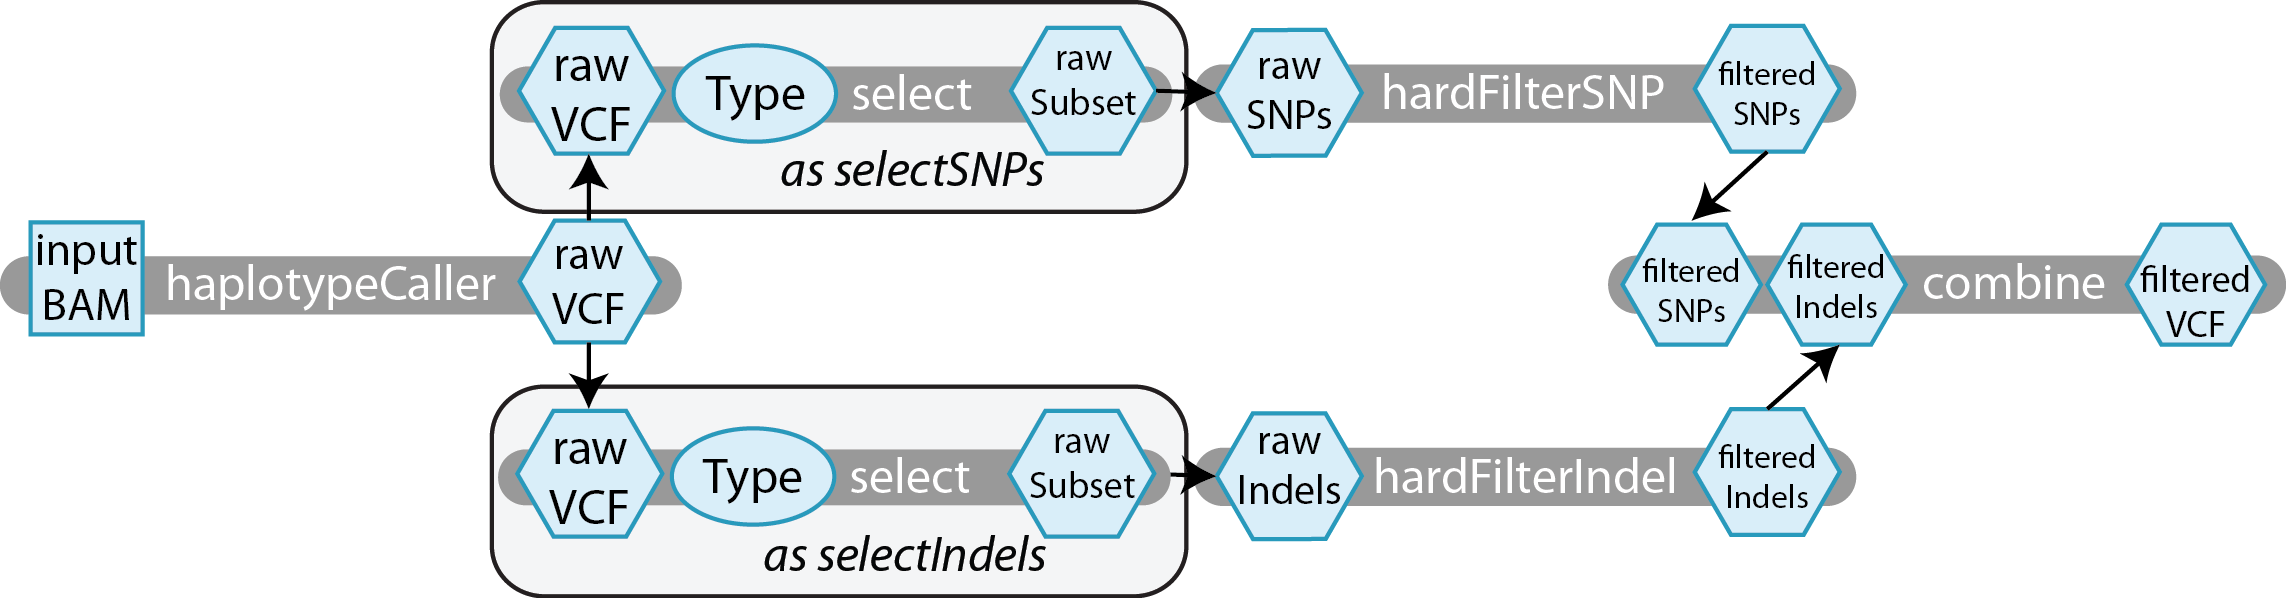 With Linear Chaining, We Will Feed The Separate Indel And Snp Vcfs Into A  Filtering Step Using Separate Tasks, We Will Show A Sample Hard Filter,